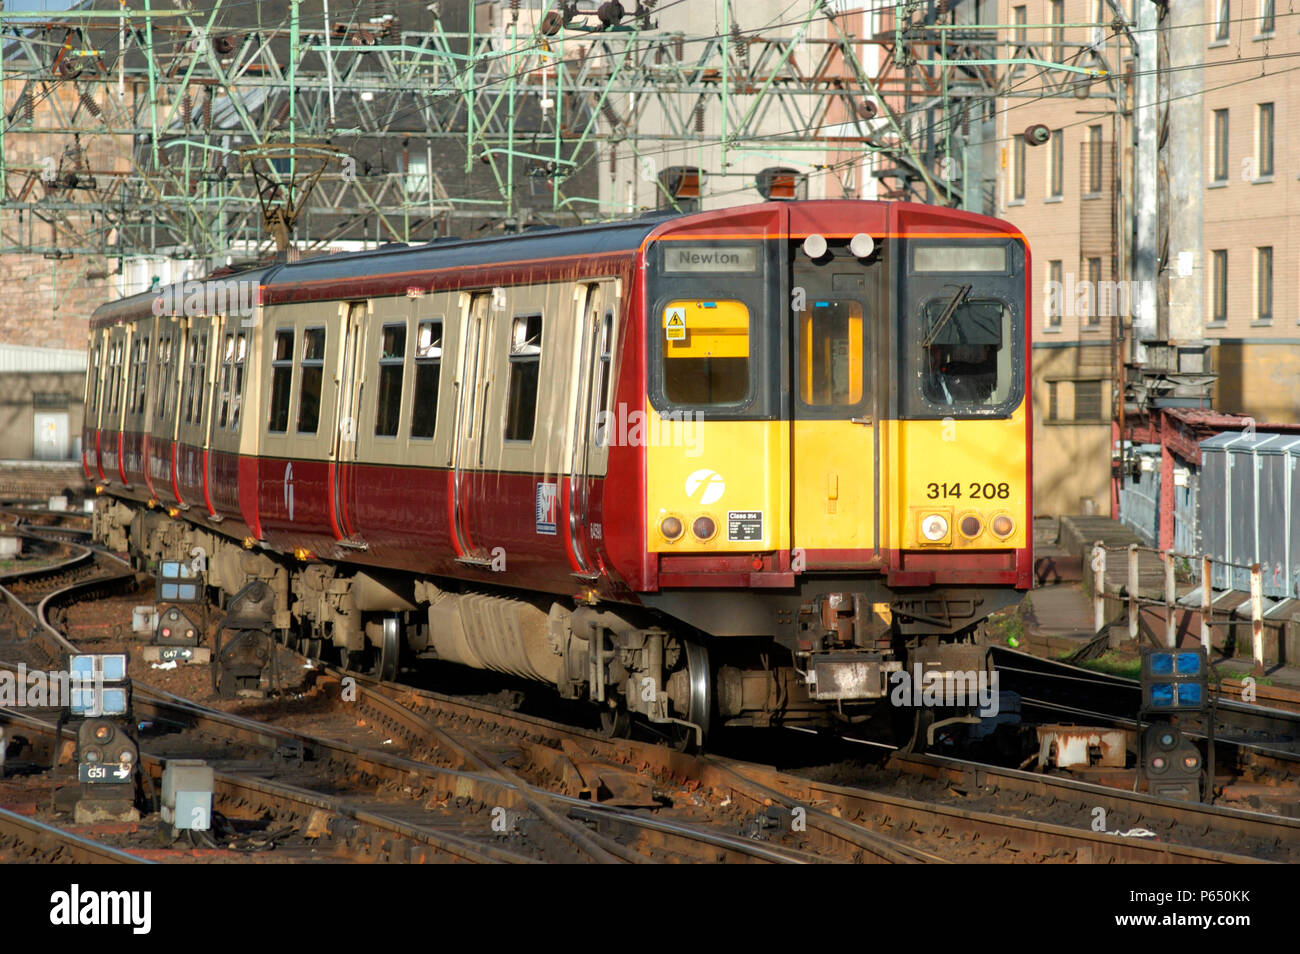 314.208 arrives at Glasgow Central with a local service from Newton. November 2004. - Stock Image